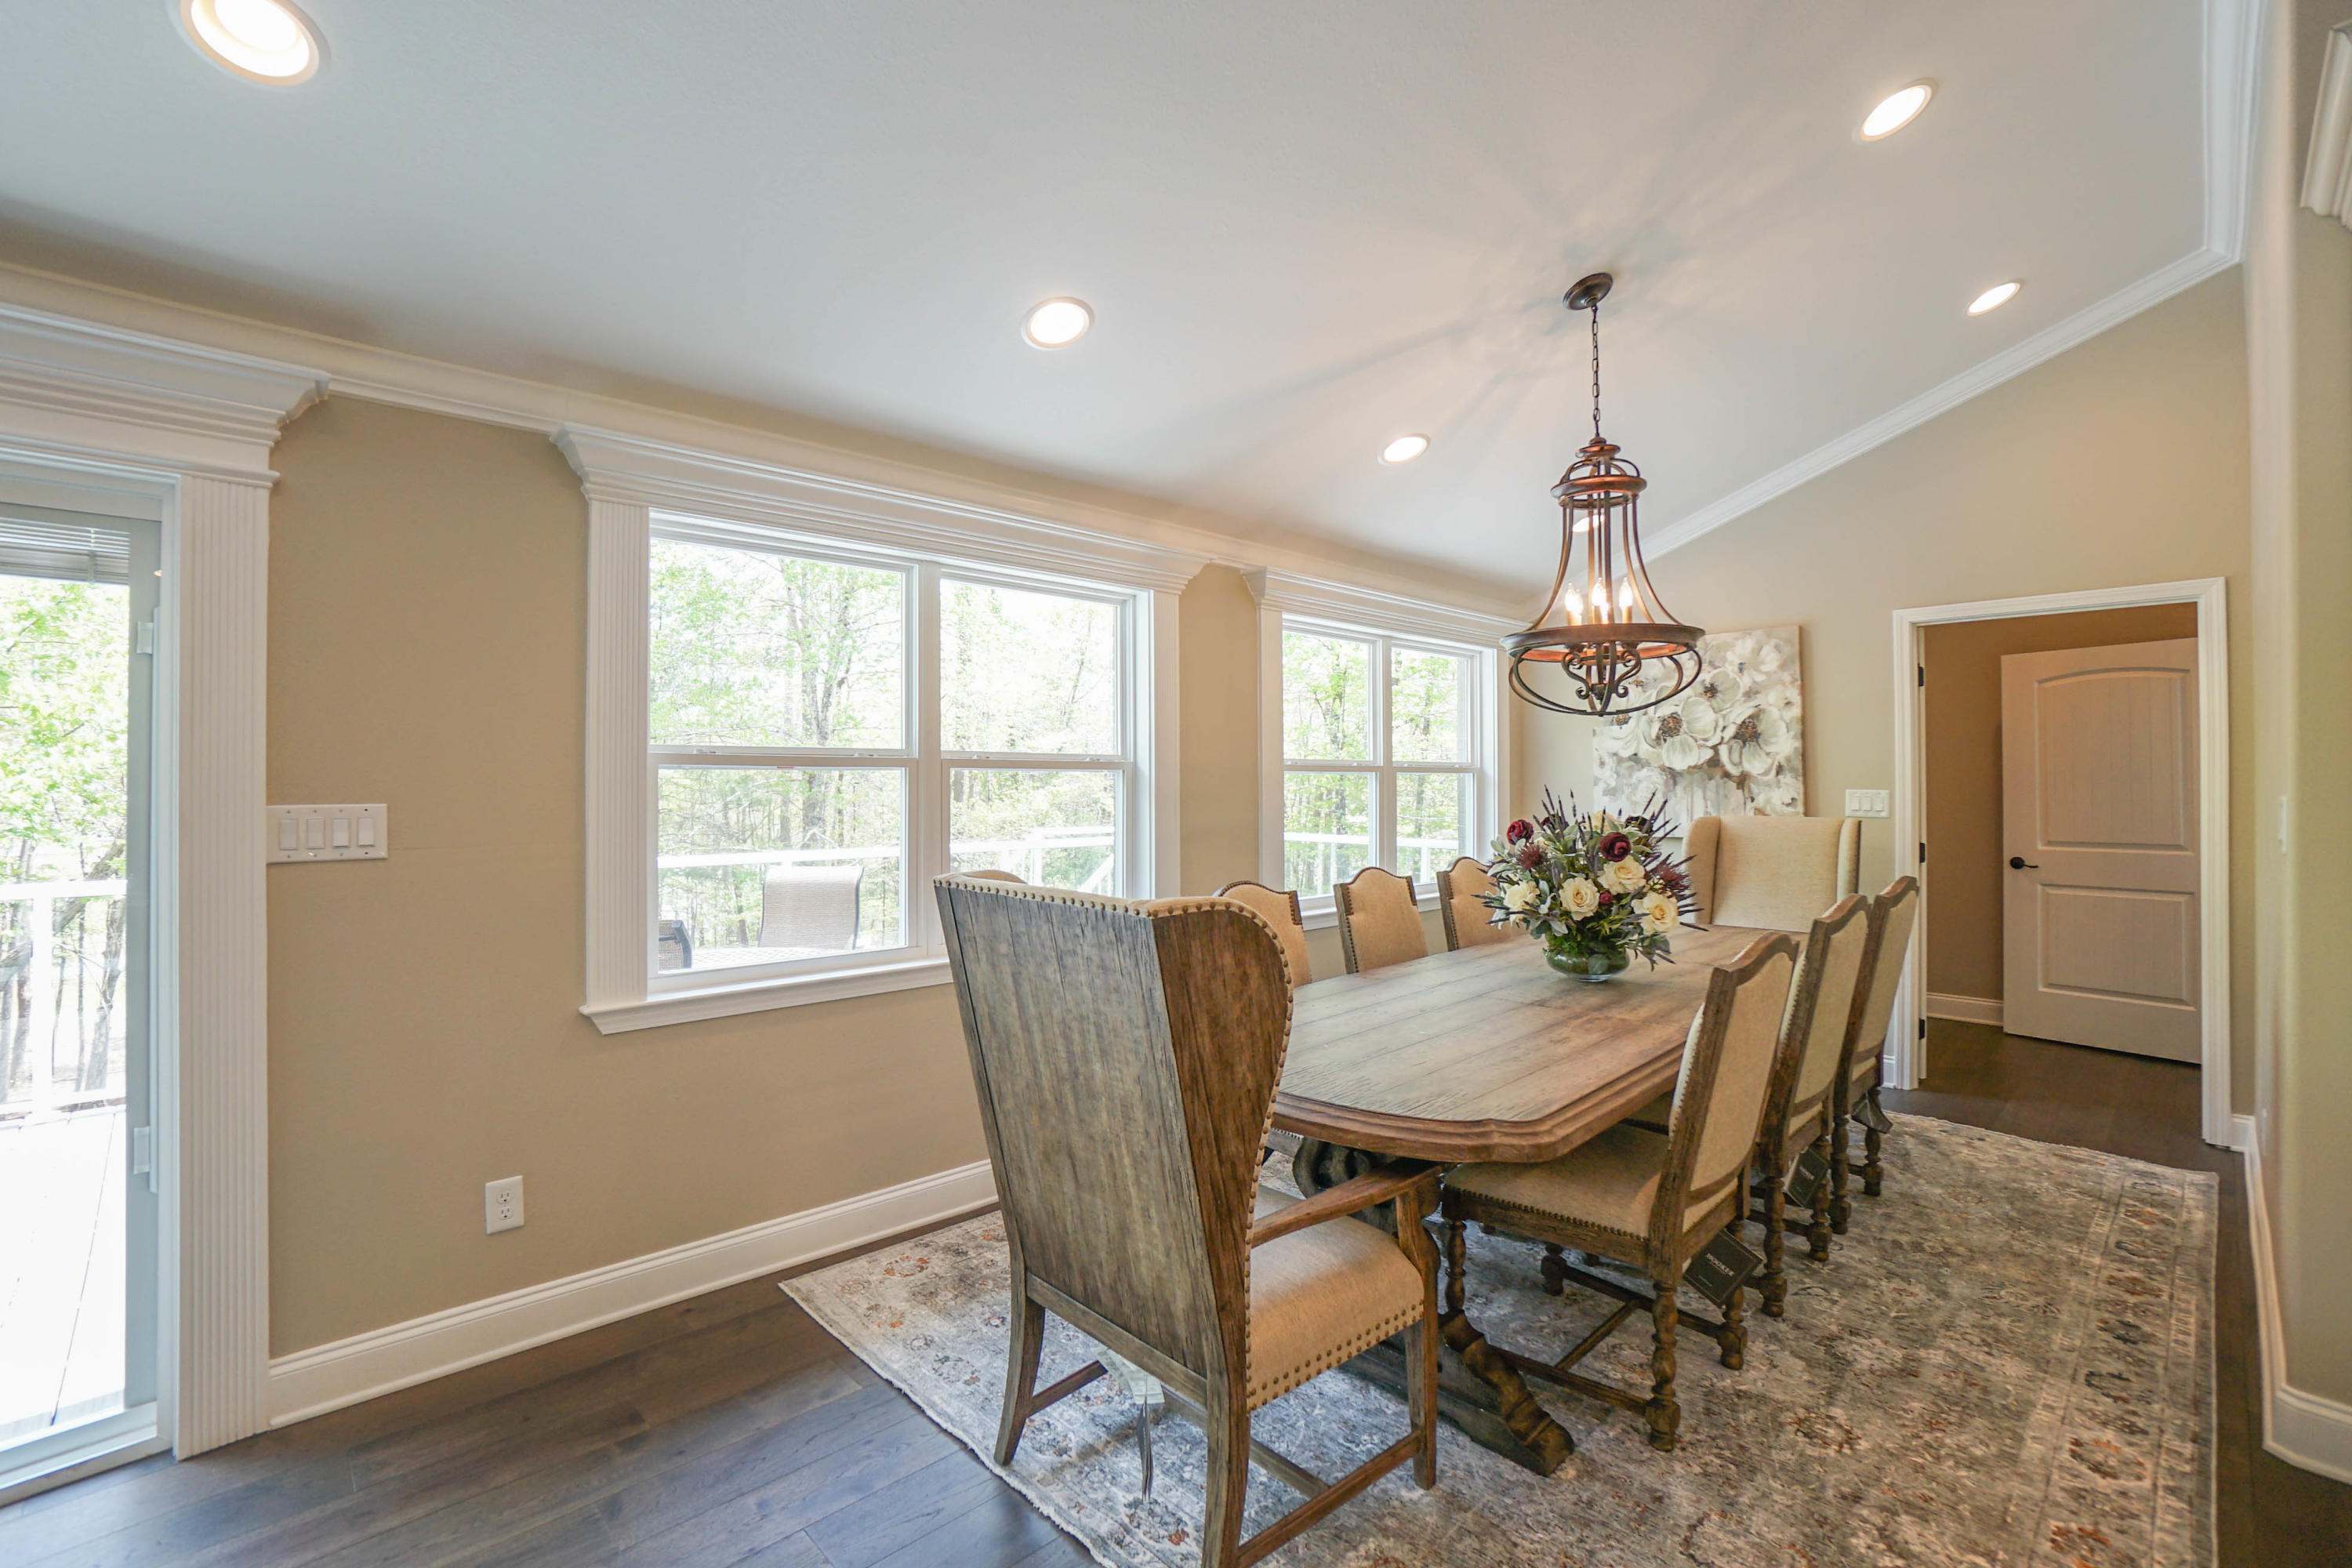 4103 Timber Wood Rd: